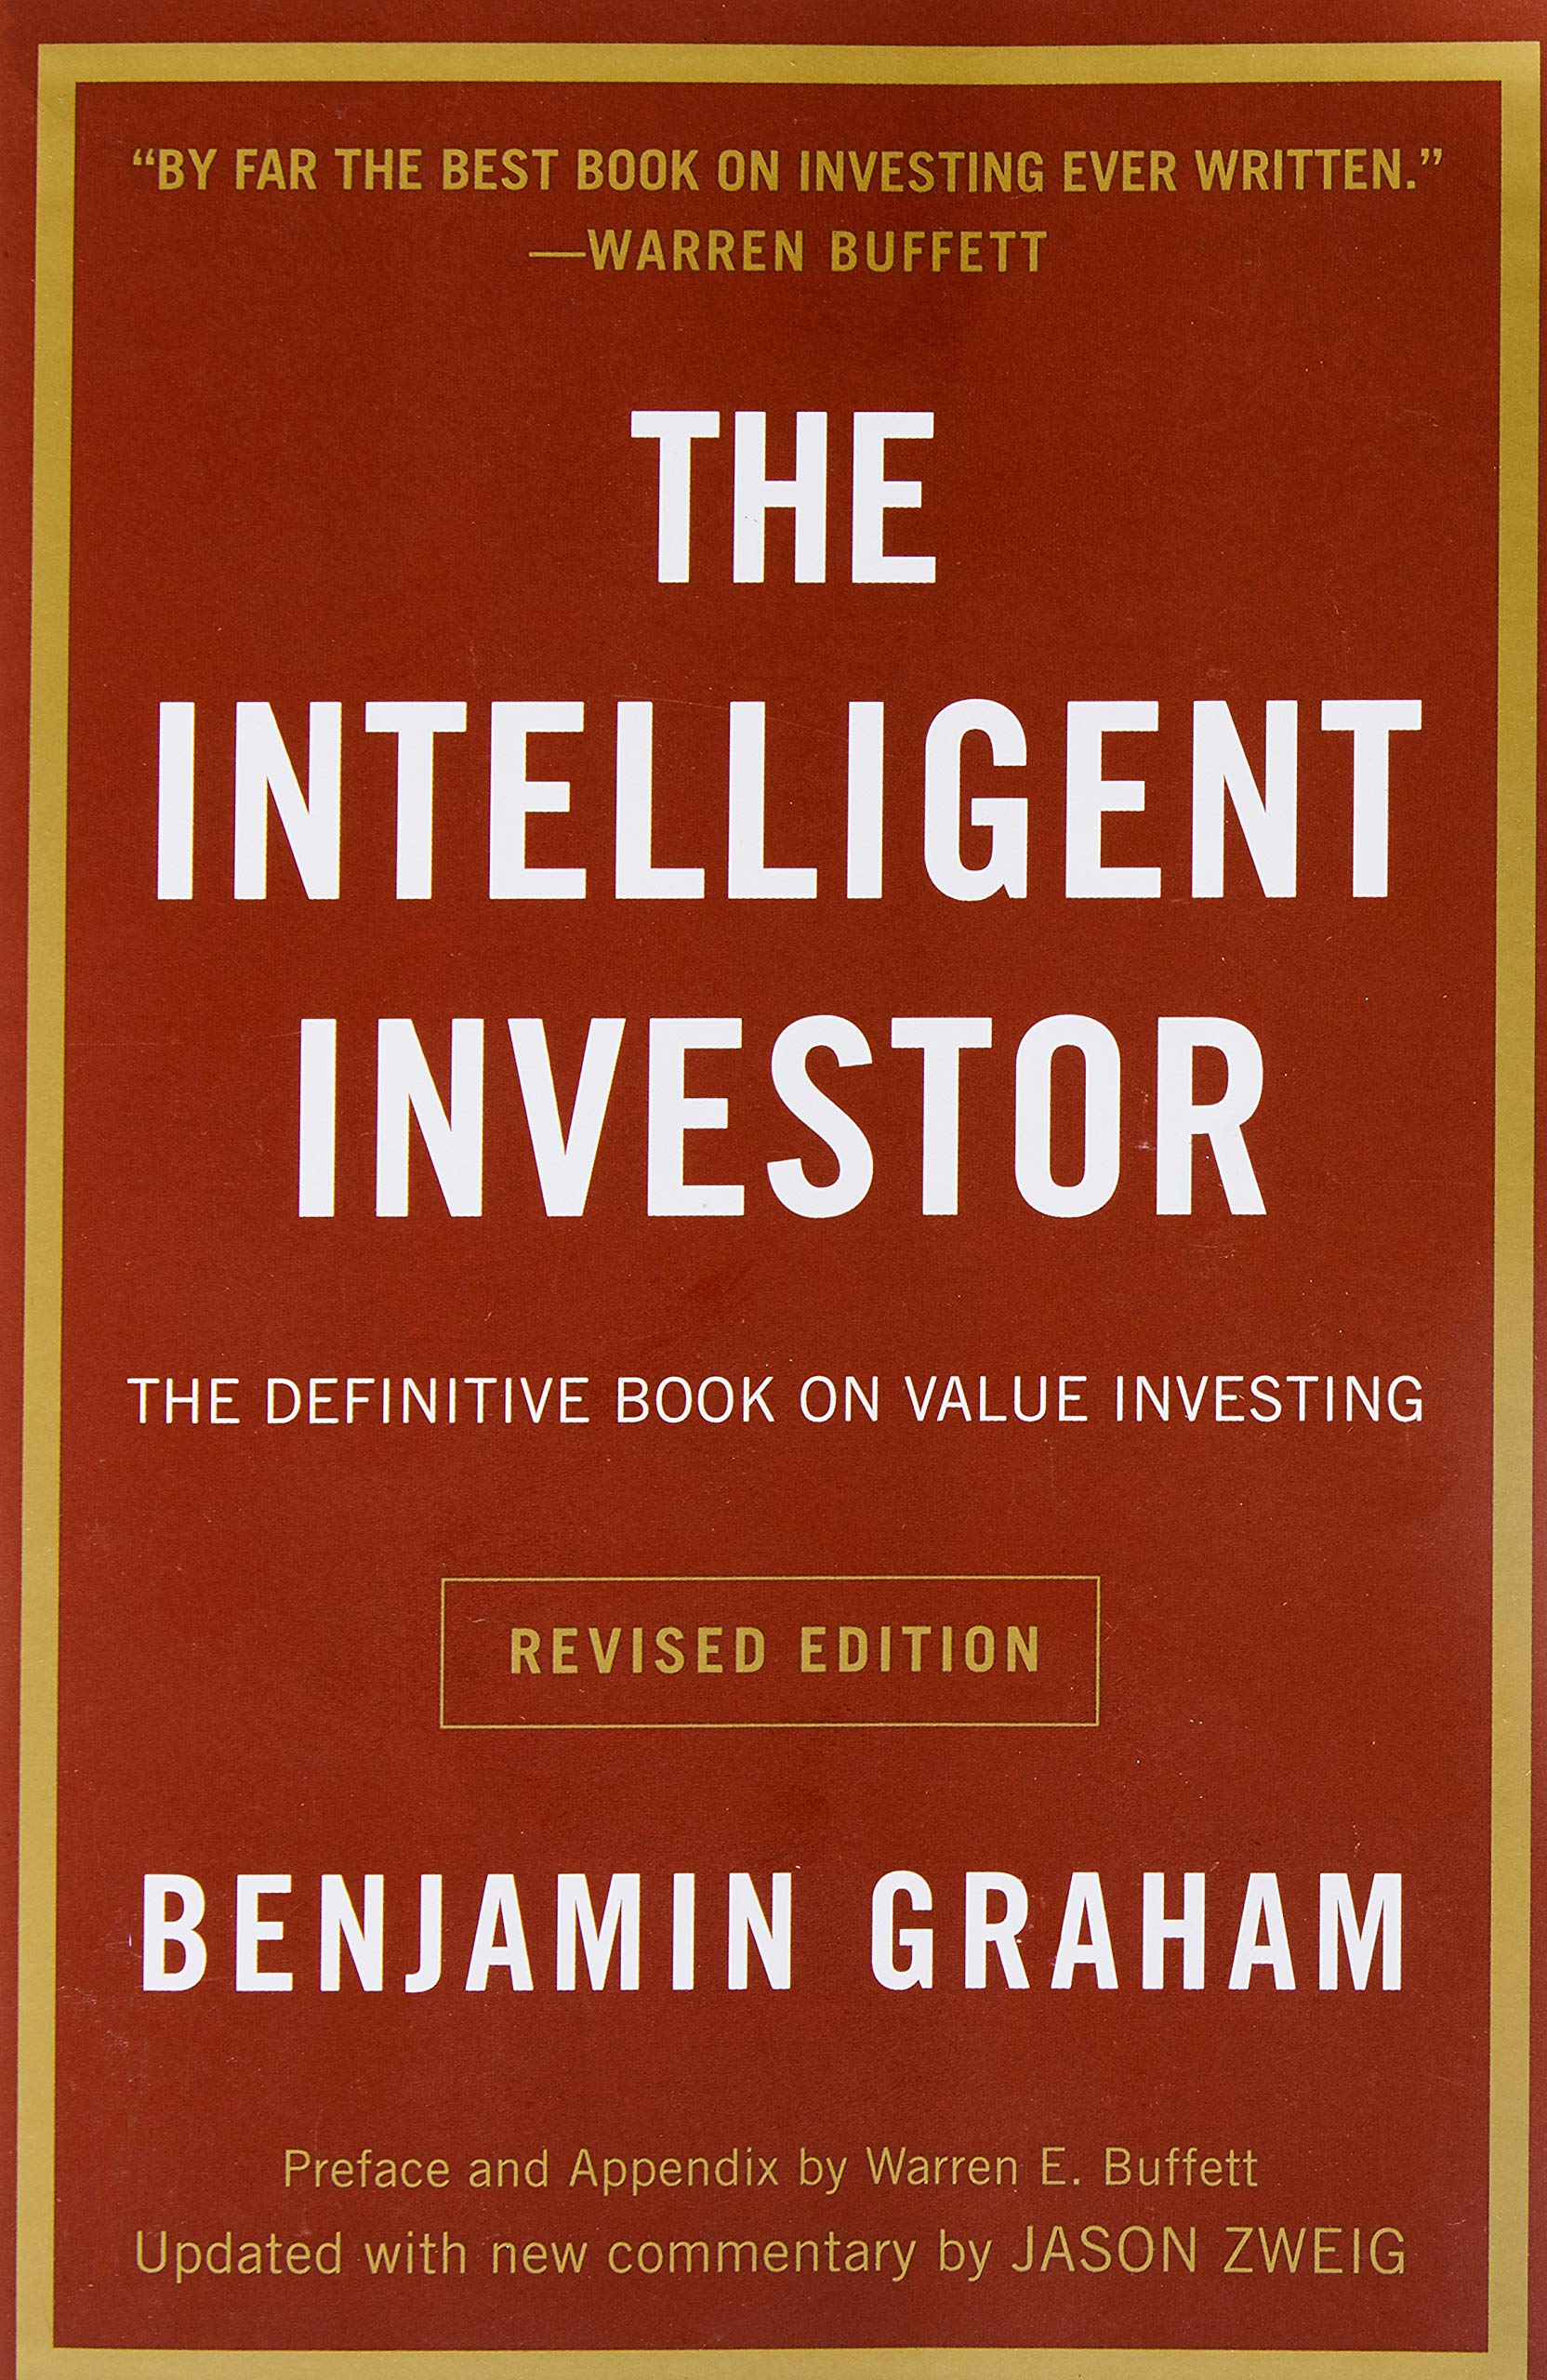 The cover of The Intelligent Investor by Benjamin Graham.